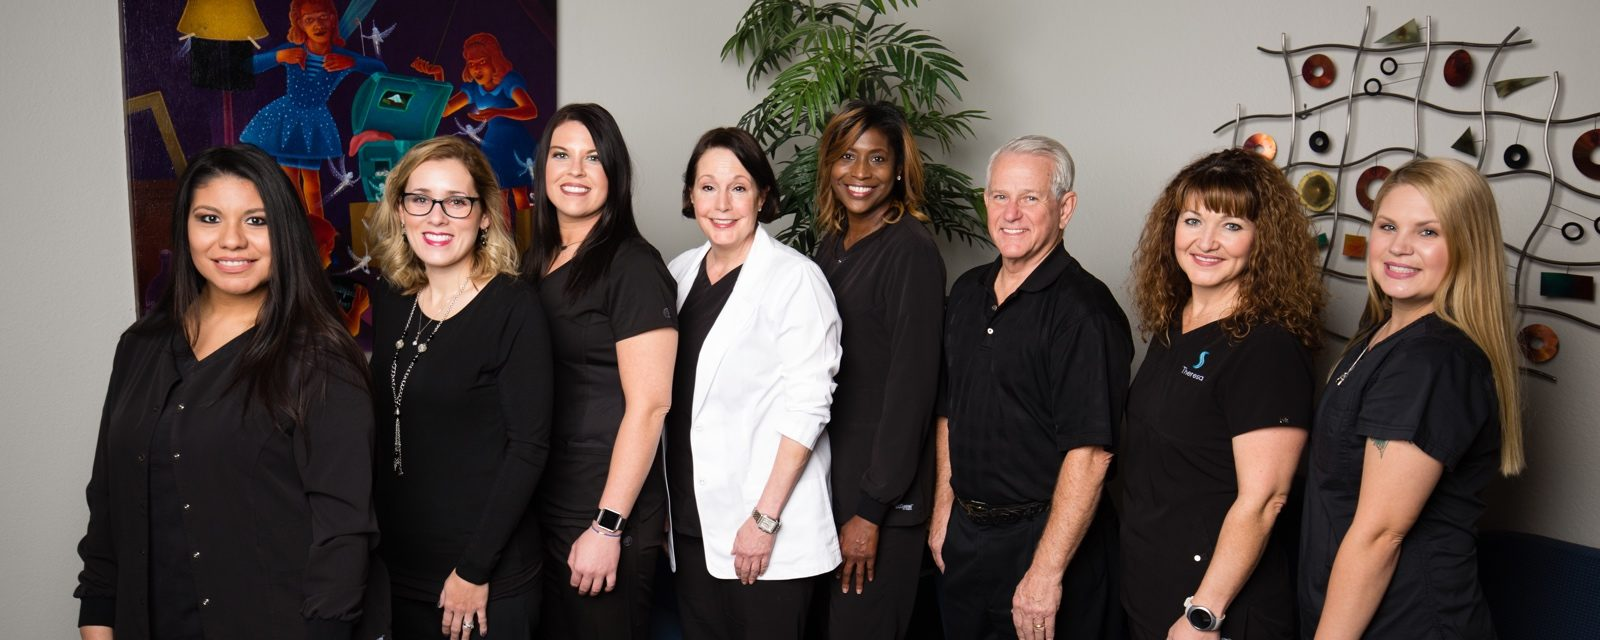 The Kelli Slate D.D.S. dental office team